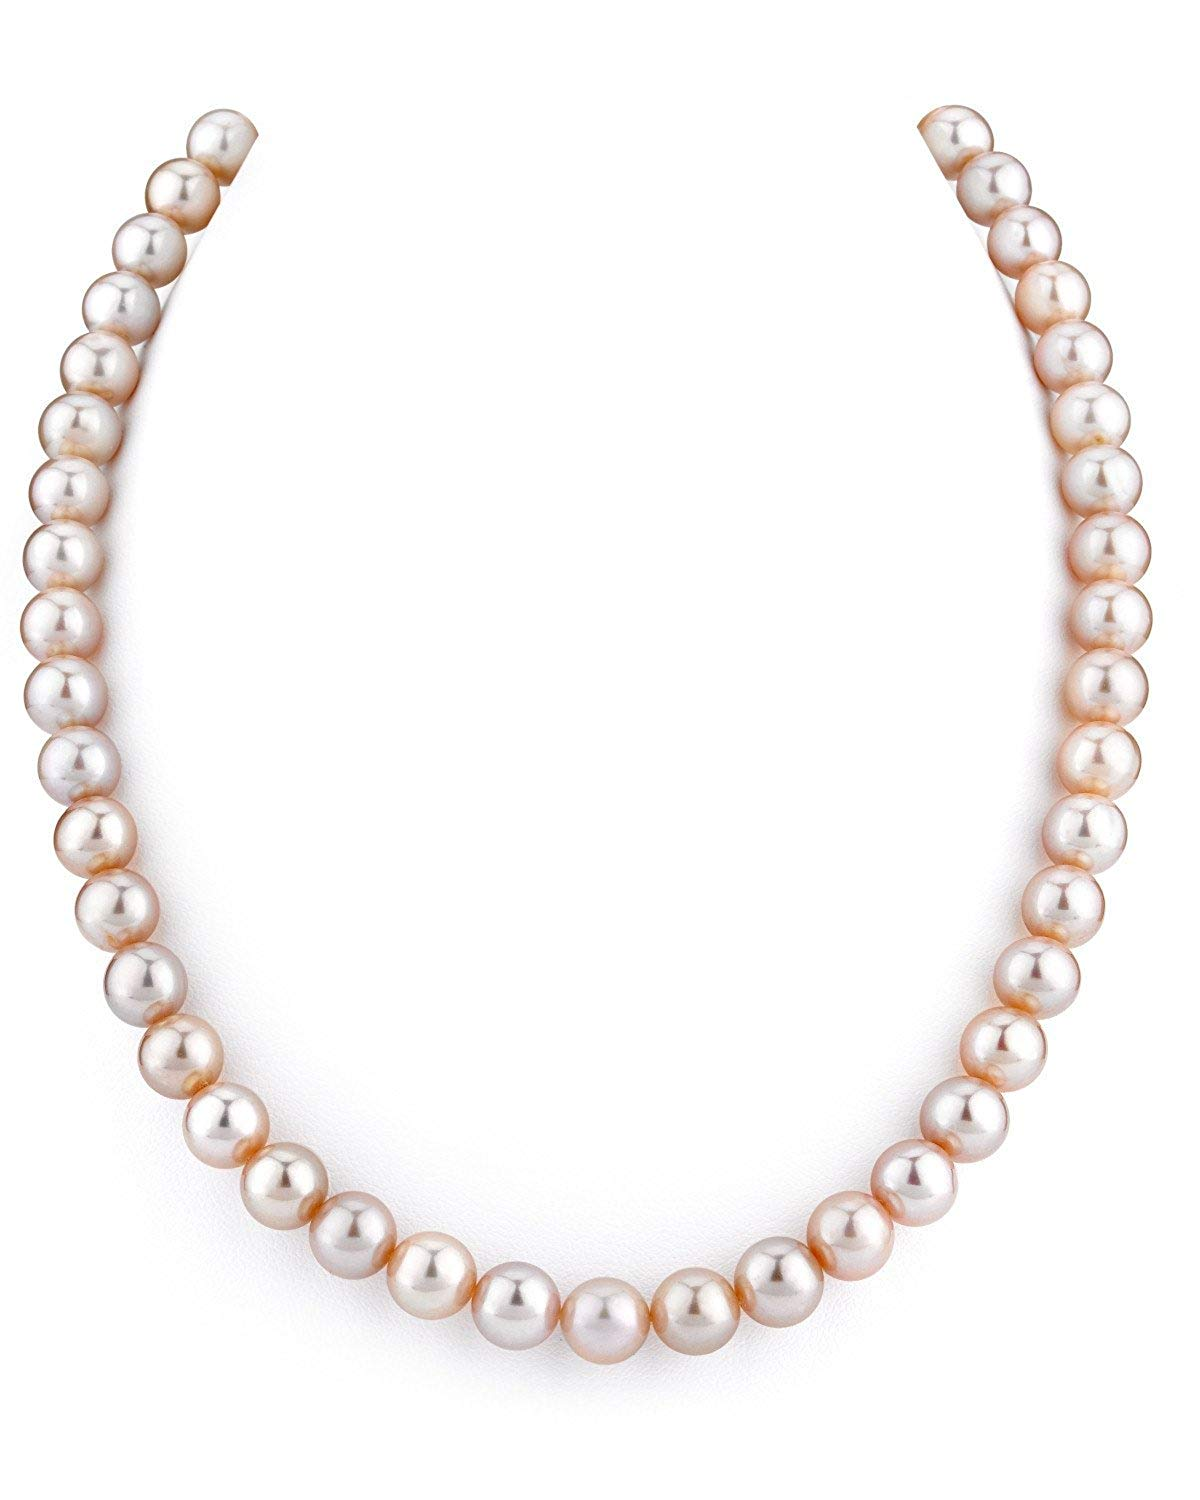 THE PEARL SOURCE 14K Gold 7-8mm AAA Quality Peach Freshwater Cultured Pearl Necklace for Women in 36 Opera Length